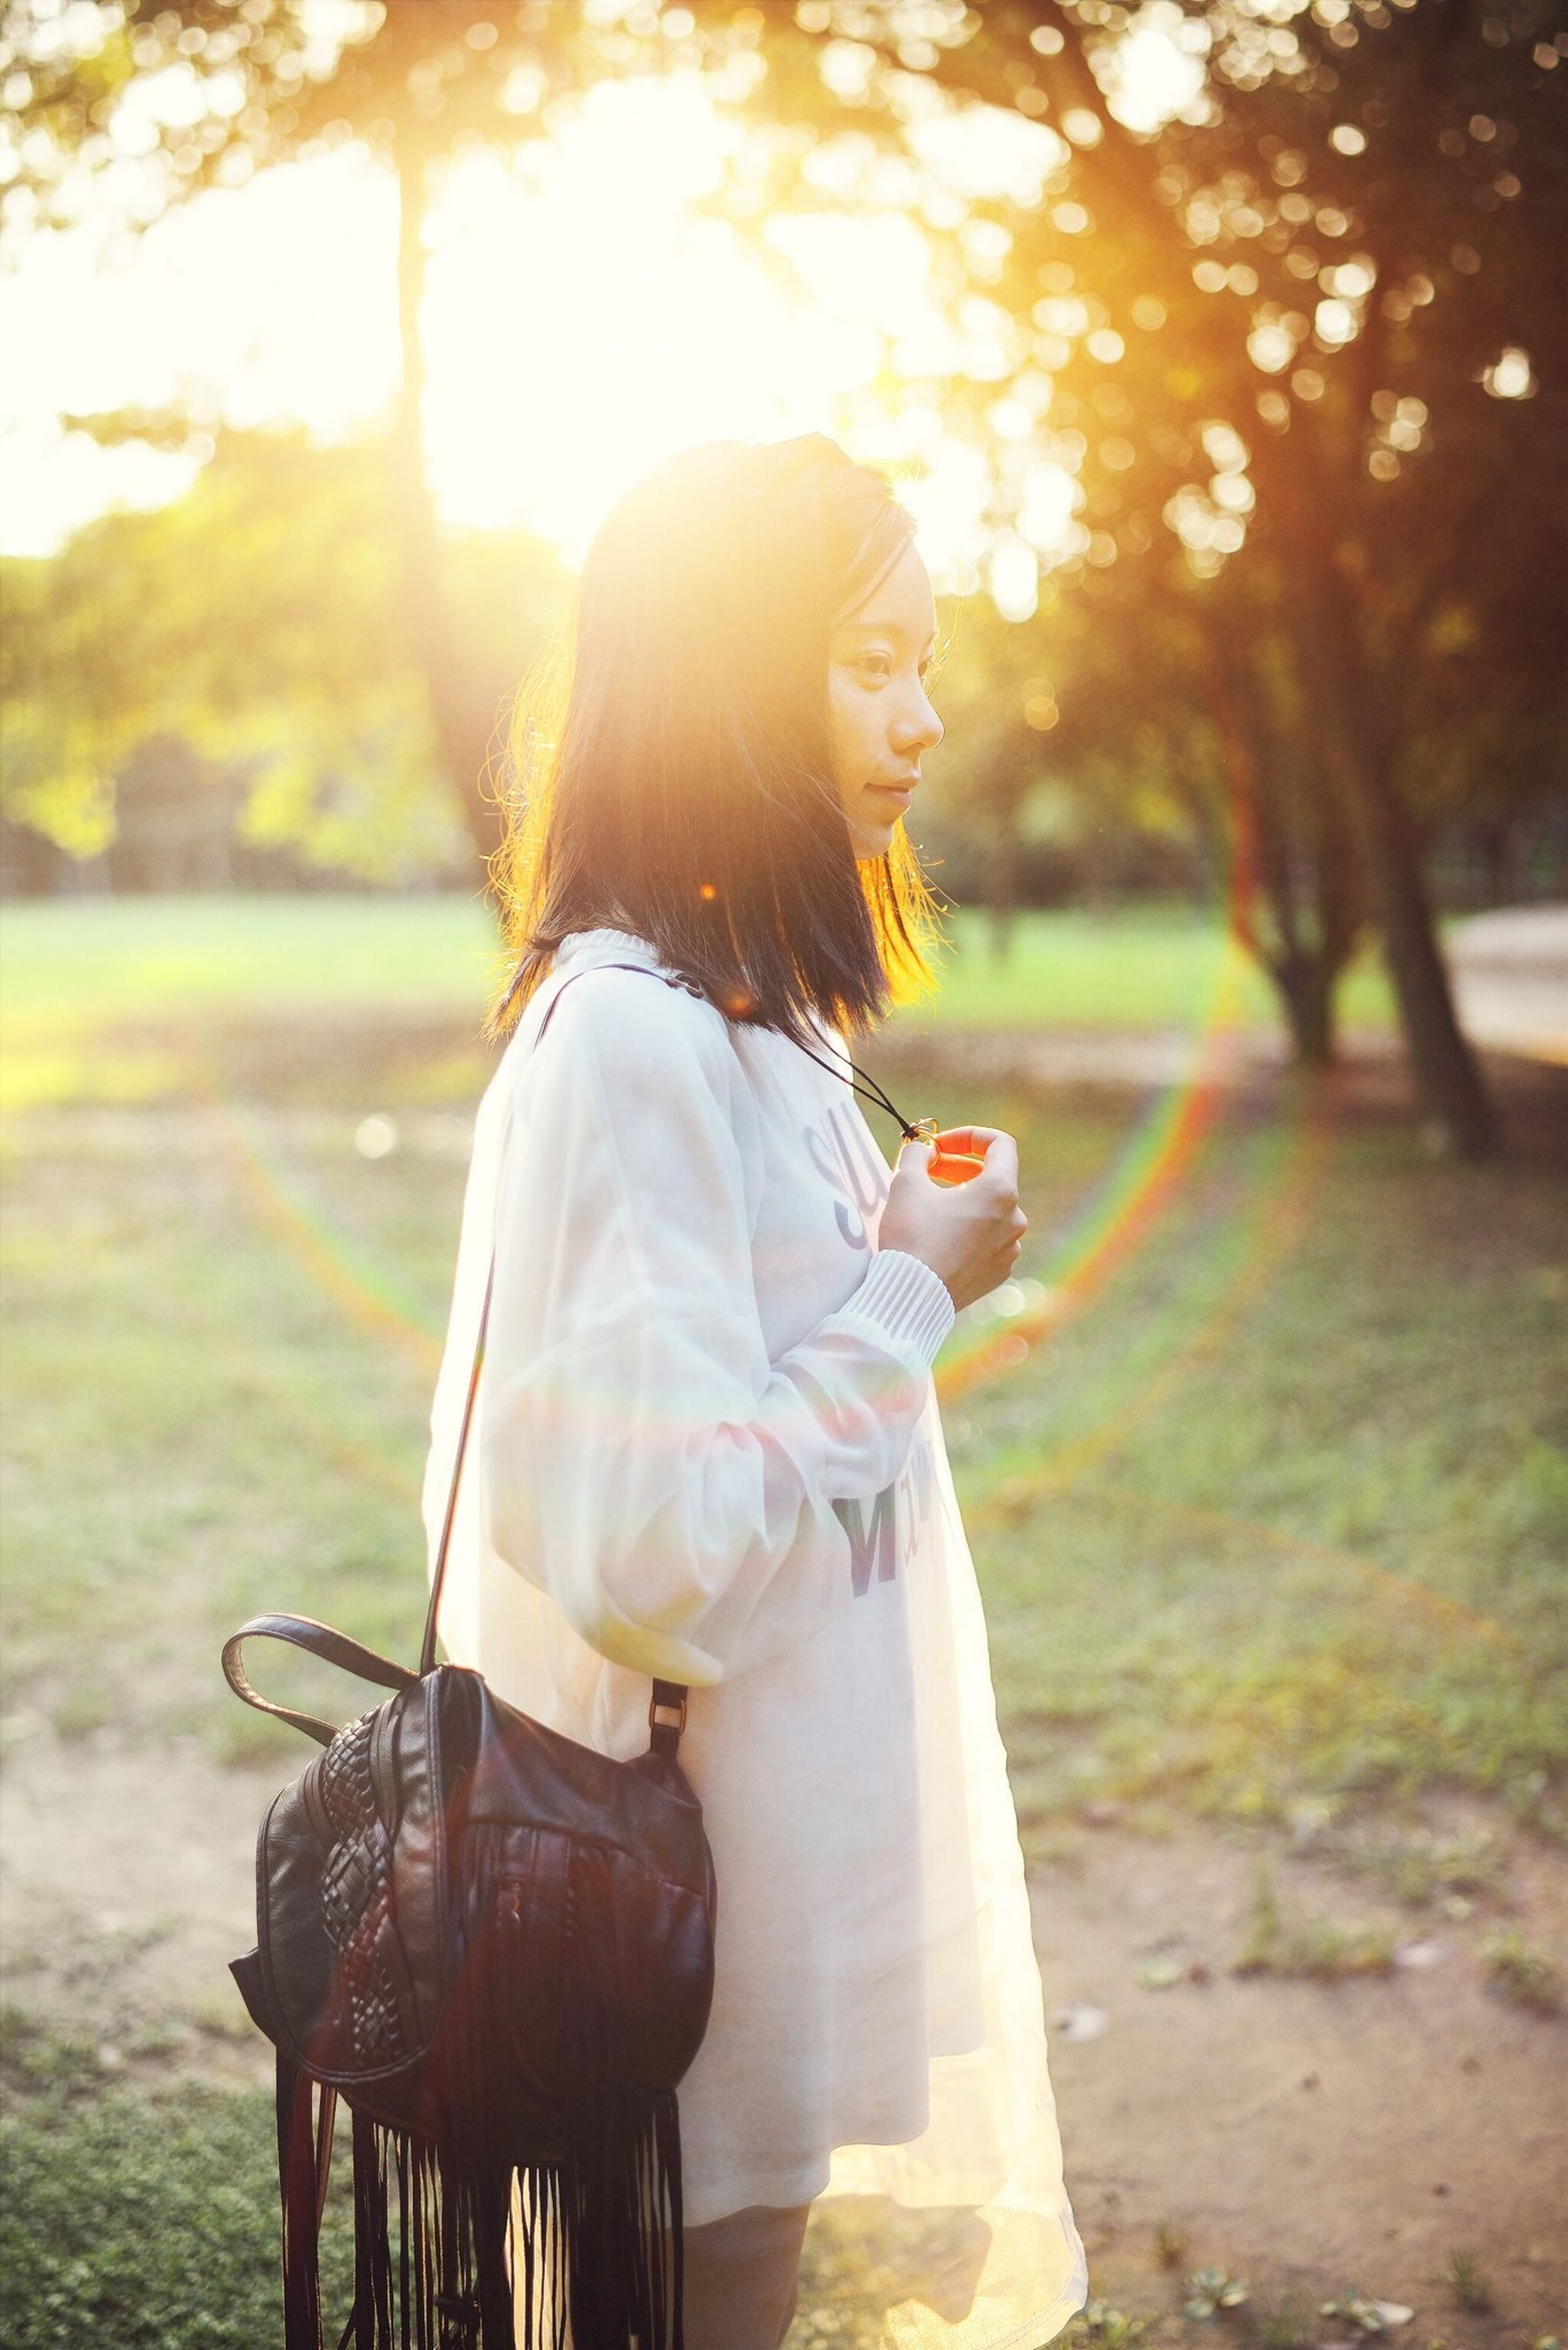 lifestyles, leisure activity, casual clothing, sunbeam, sunlight, focus on foreground, person, tree, sun, full length, lens flare, young adult, standing, side view, outdoors, rear view, holding, park - man made space